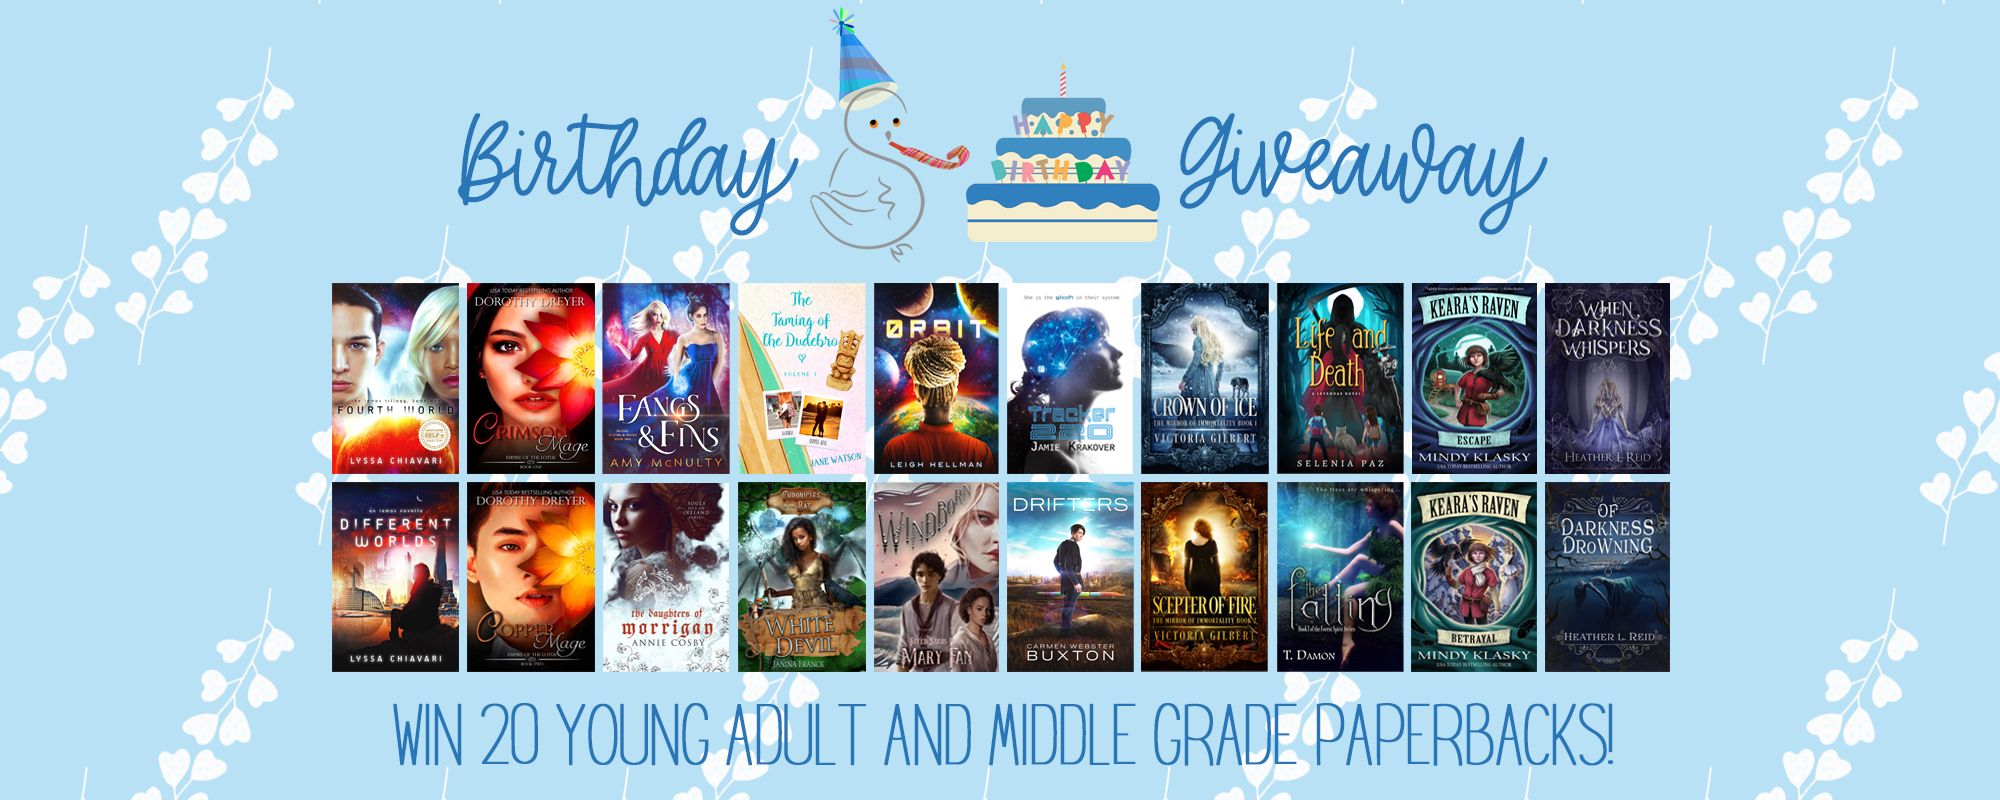 Enter our anniversary giveaway!